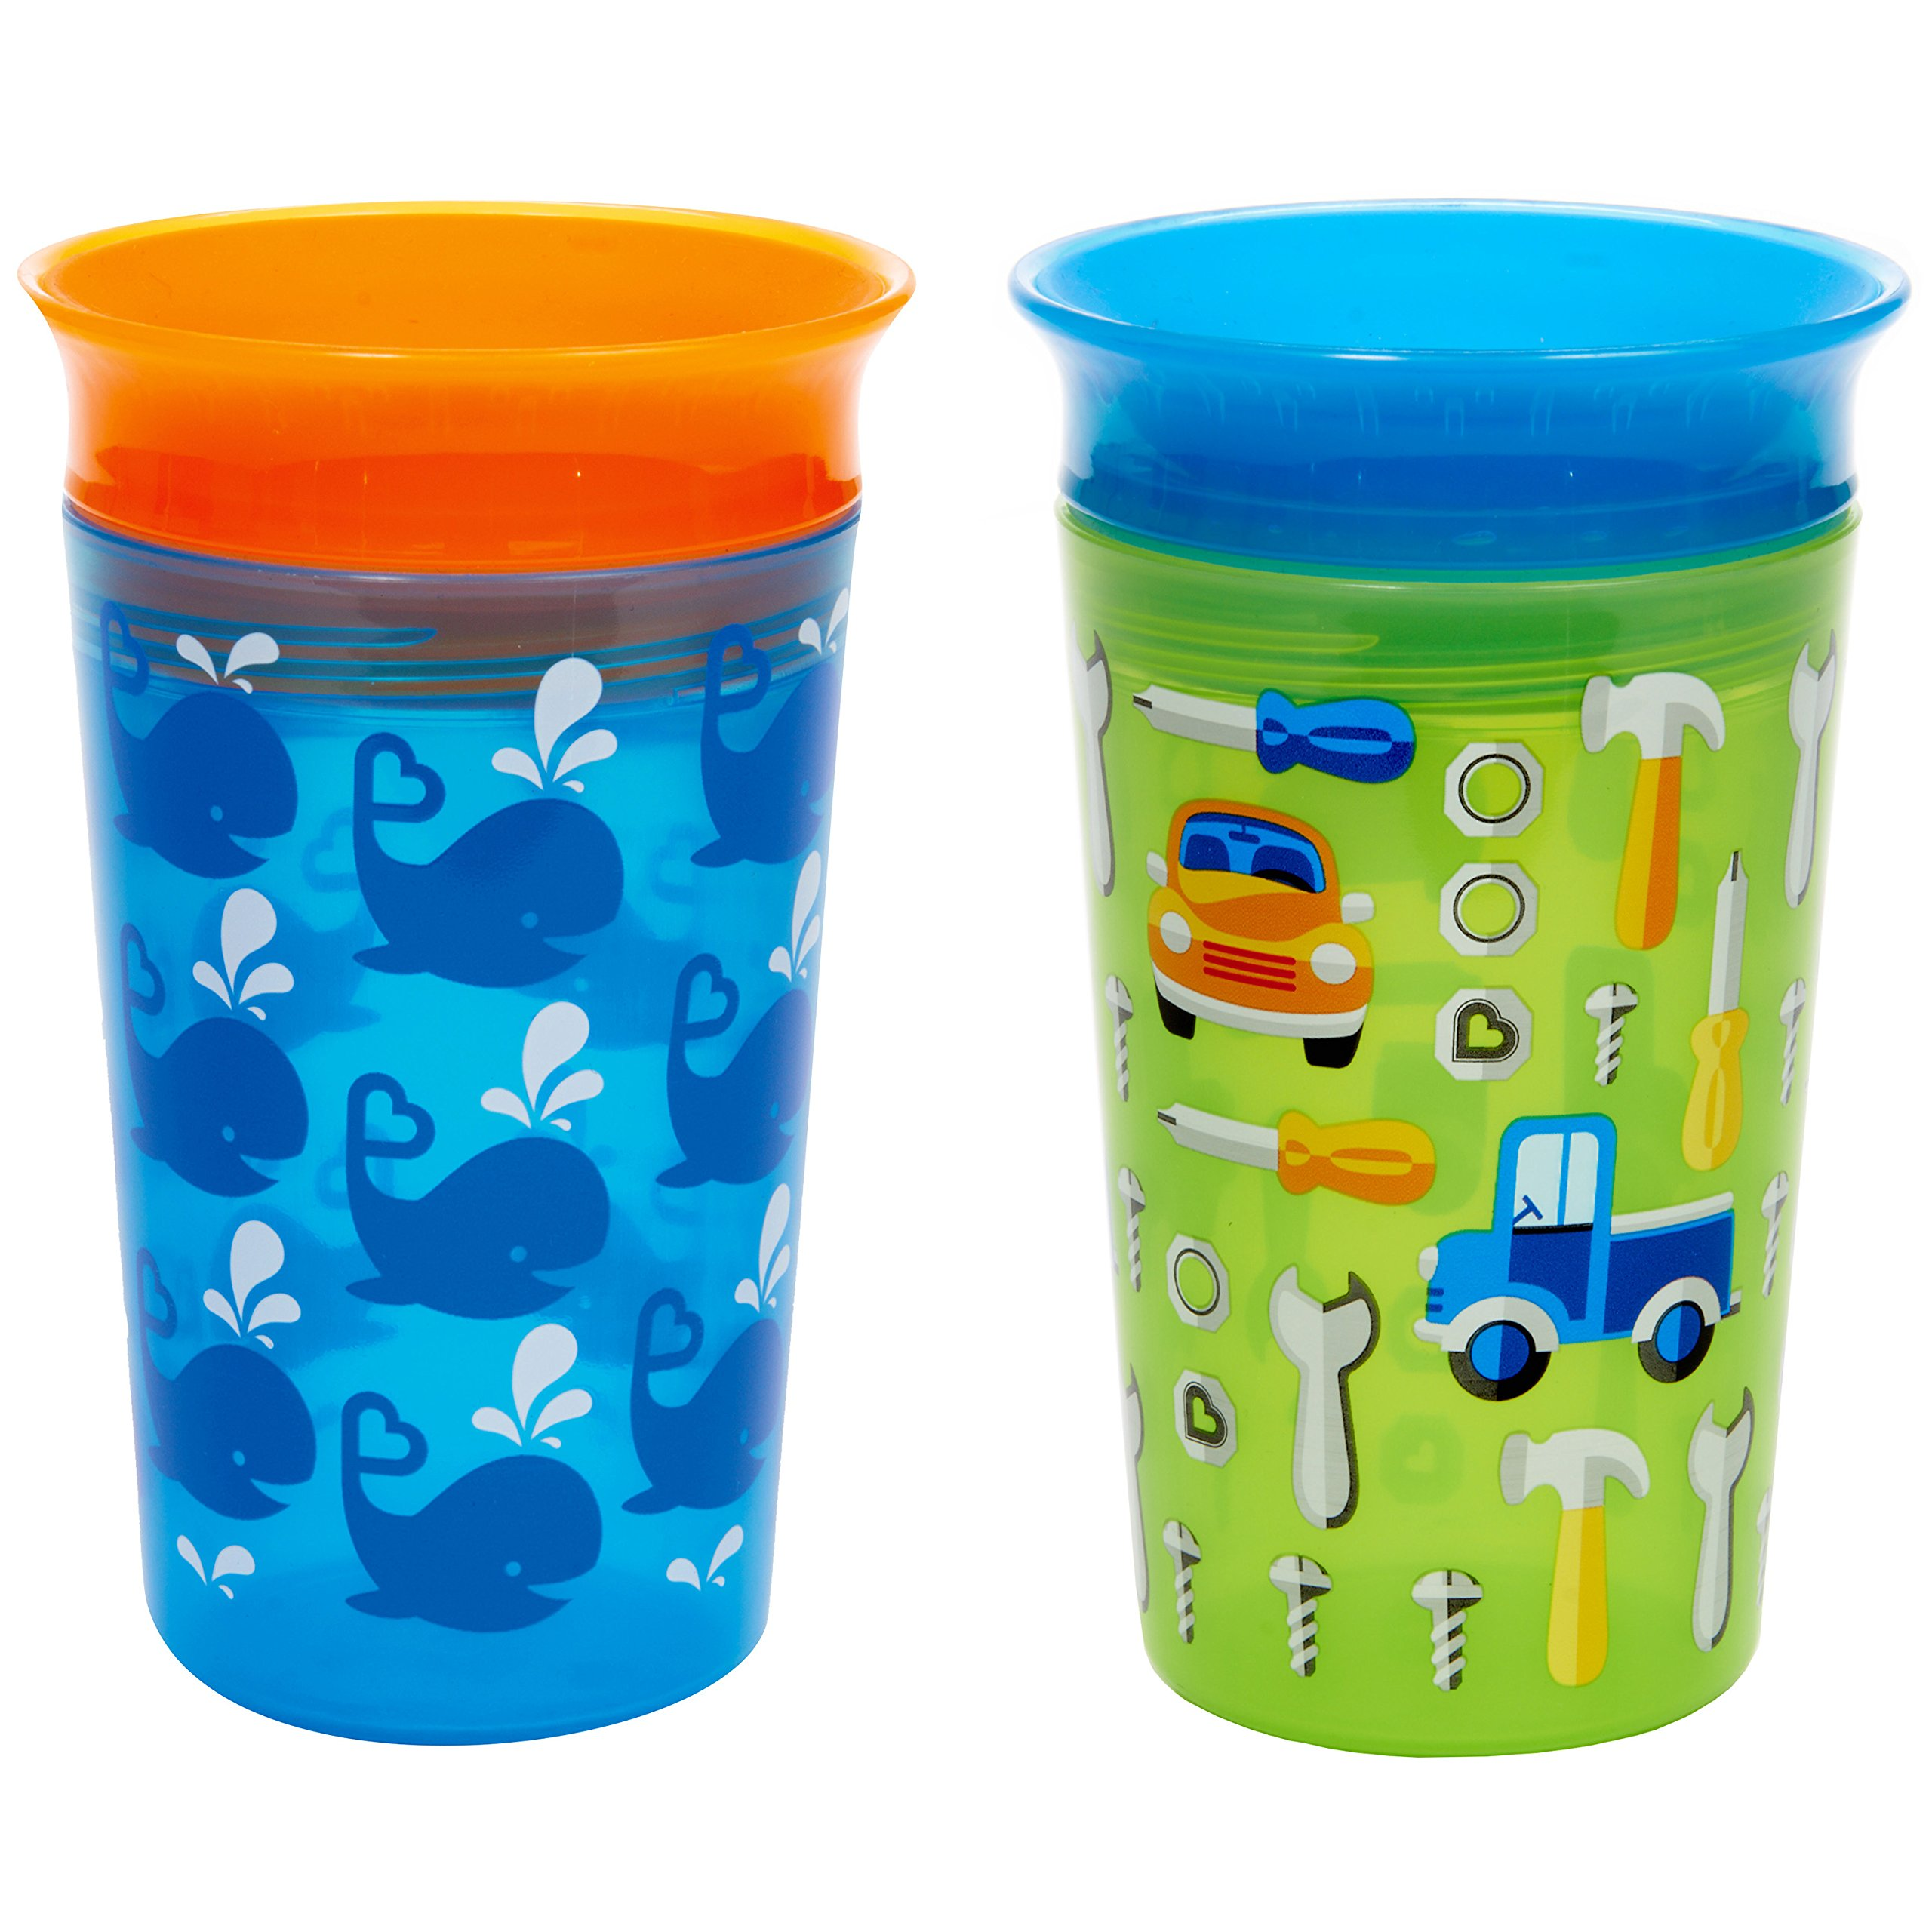 Munchkin Miracle 360 Sippy Cup, Blue/Green, 2 Count by Munchkin